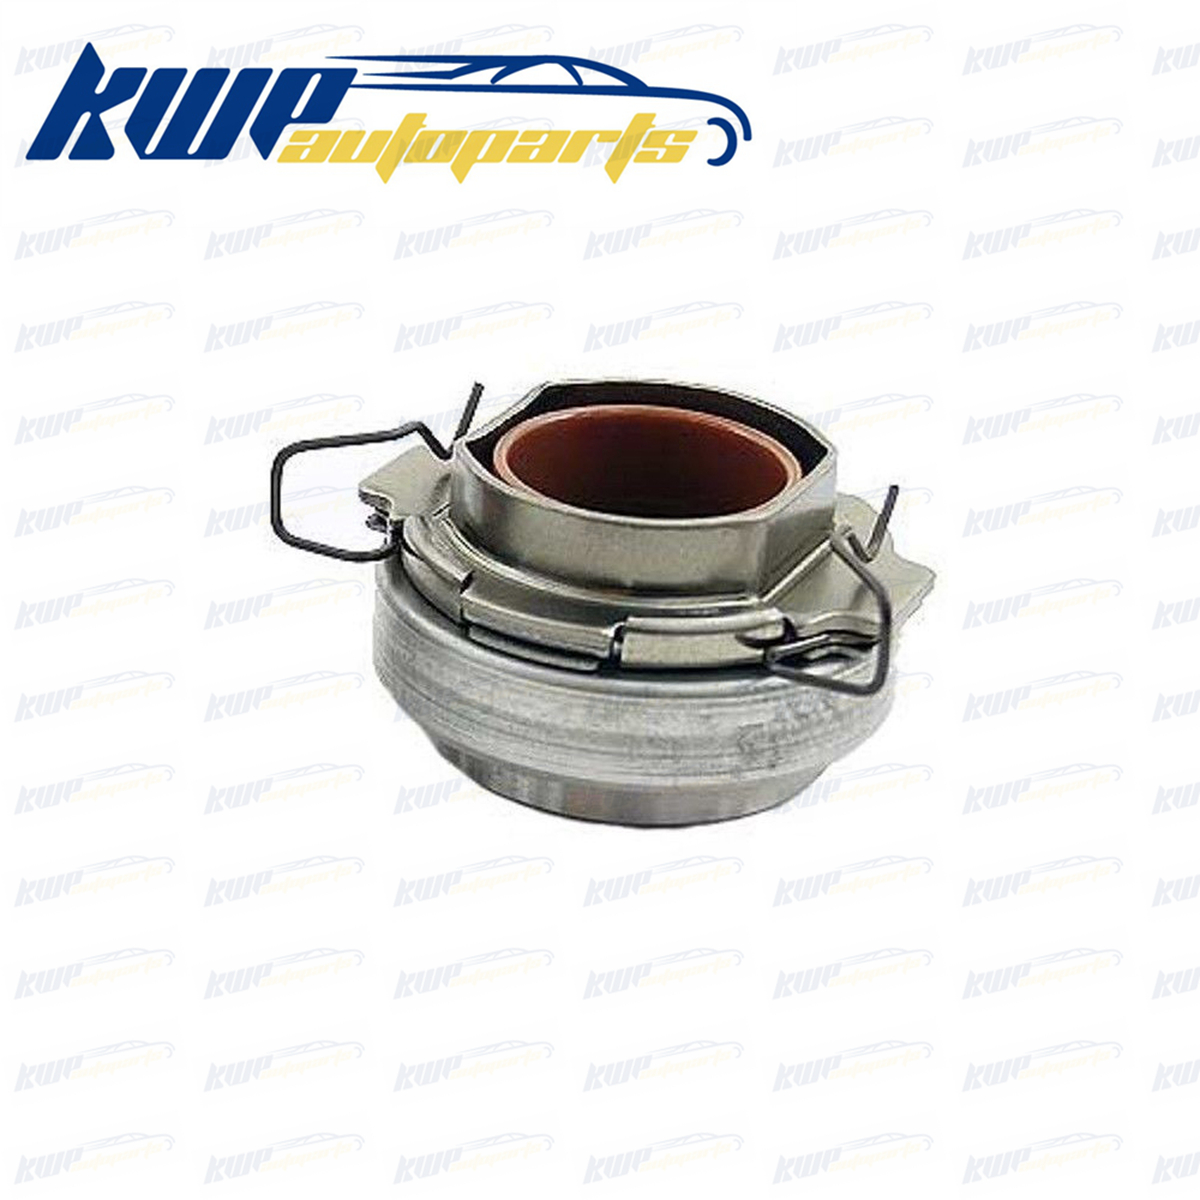 Toyota 94 Pickup: Clutch Release Bearing For Toyota 88 95 4Runner Pickup 93